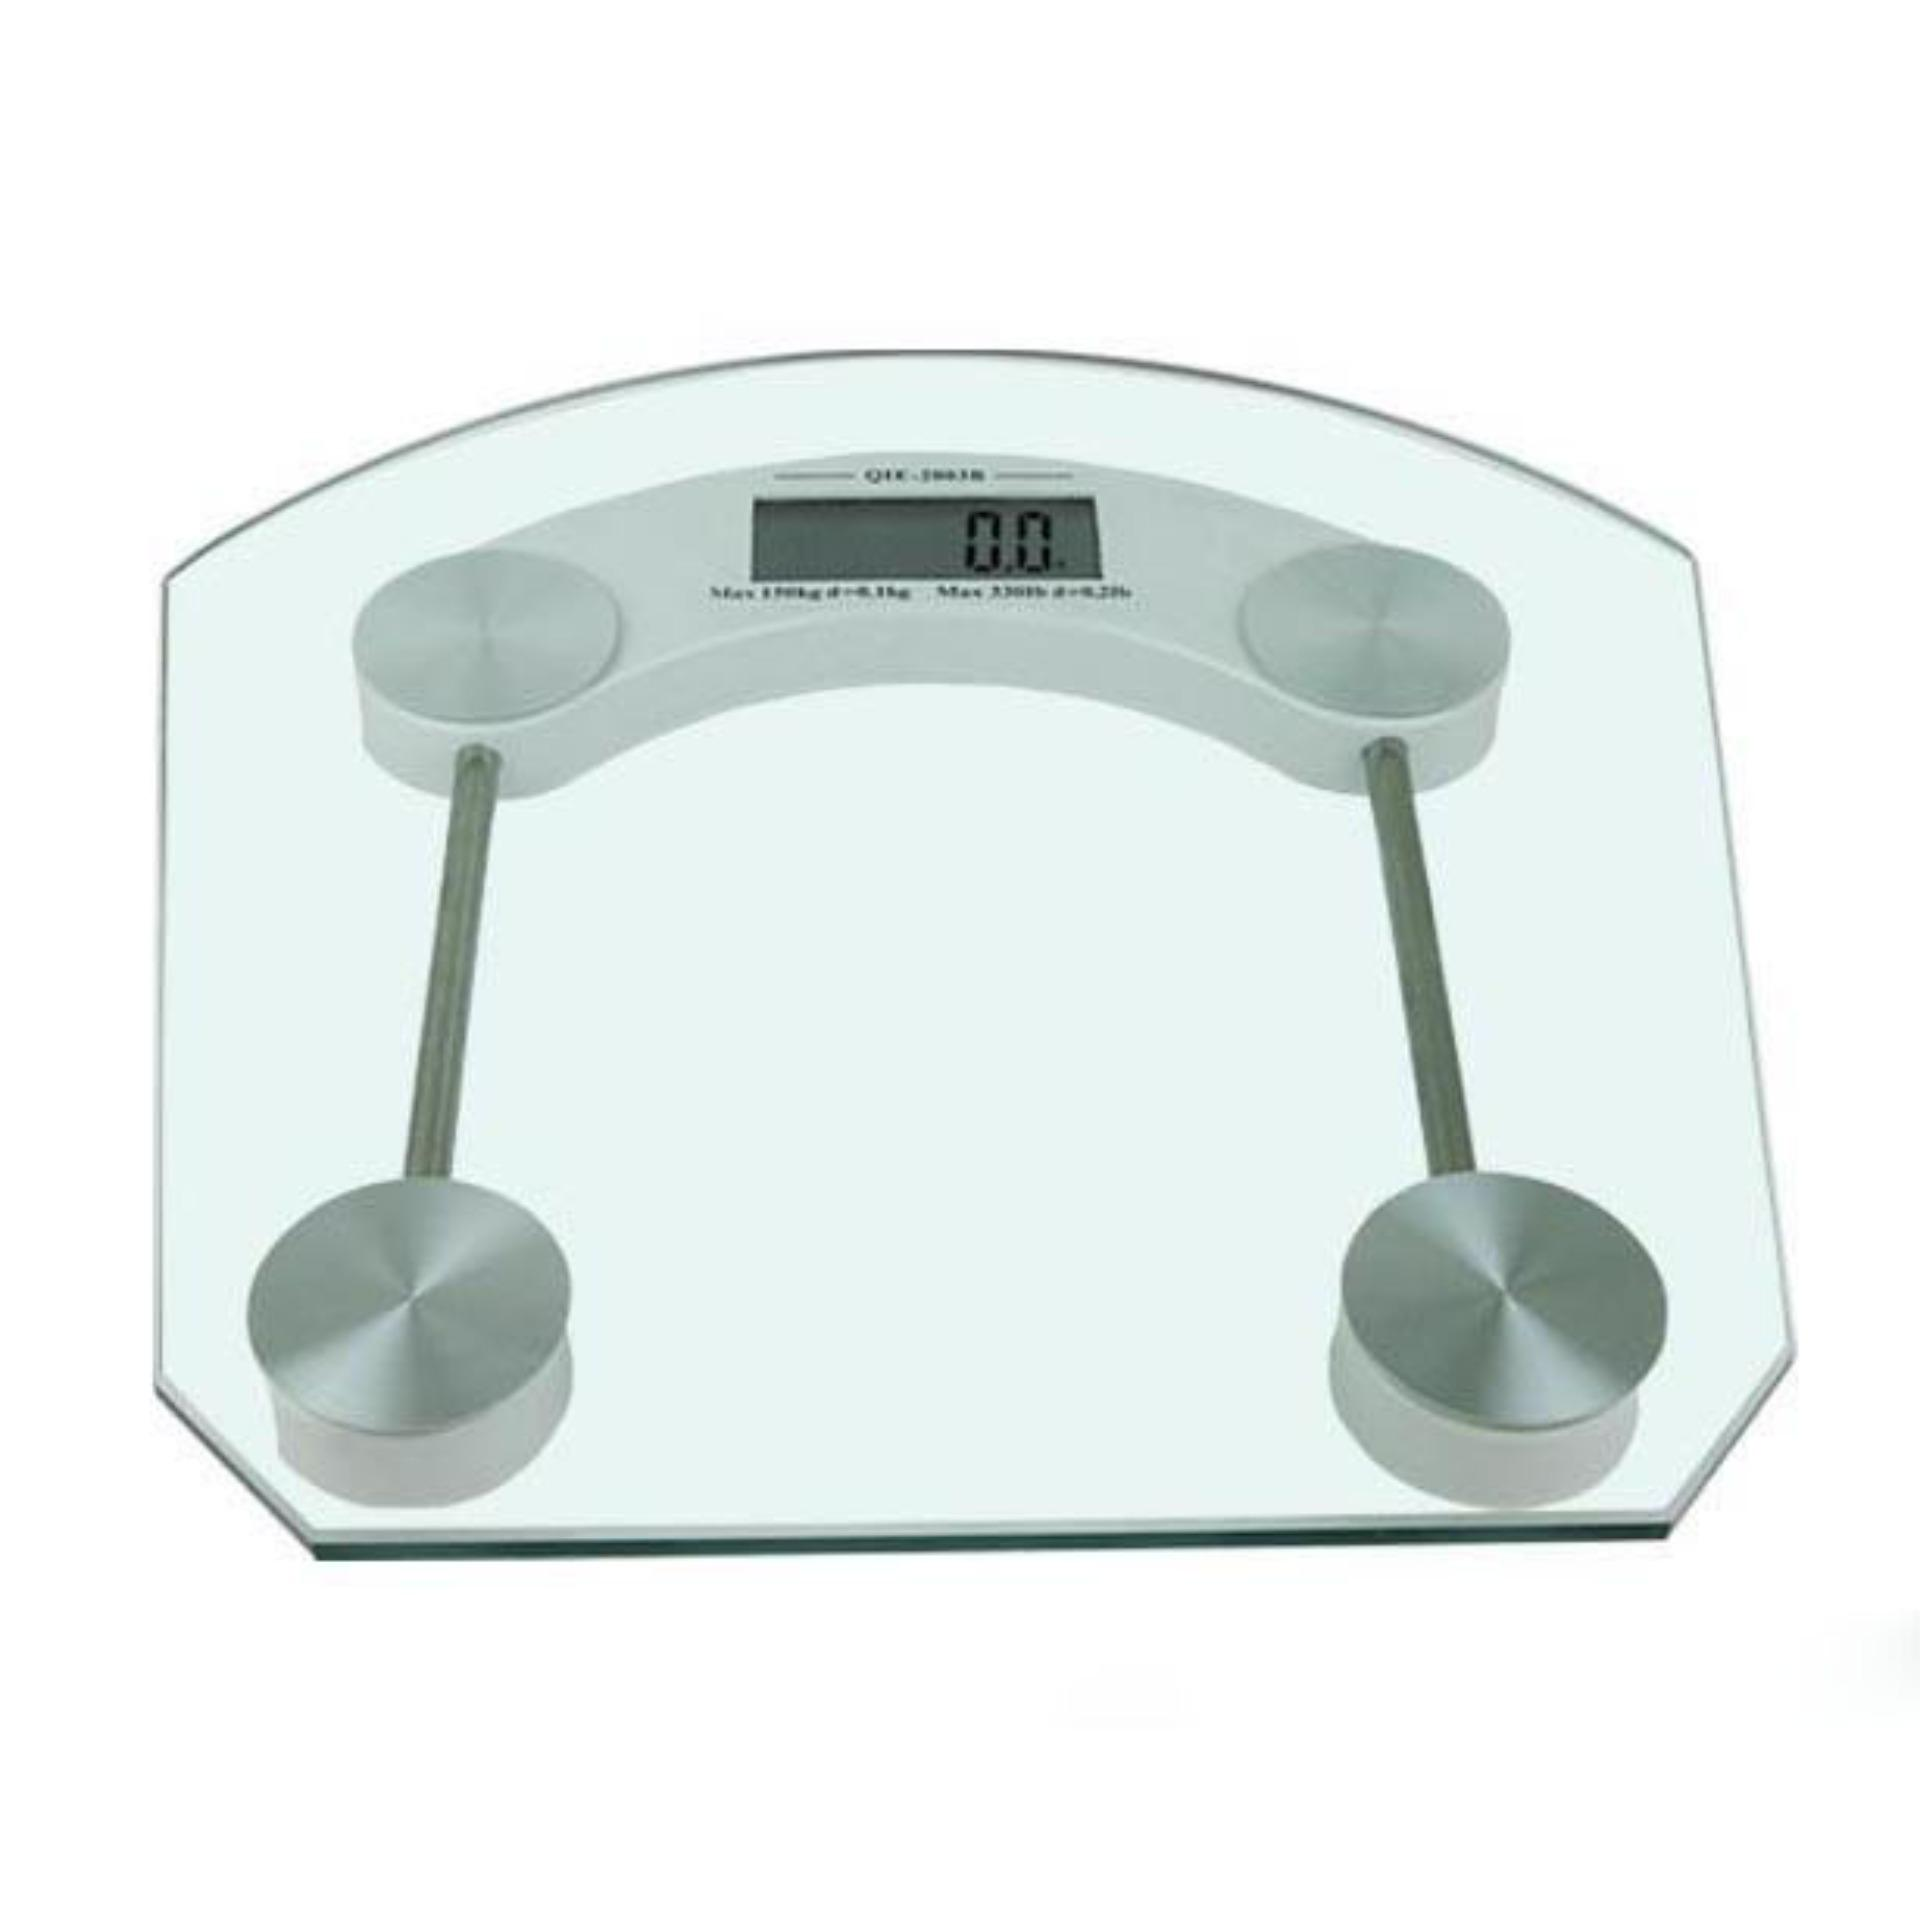 Digital LCD Electronic Tempered Glass Bathroom Weighing Scale (White) image on snachetto.com